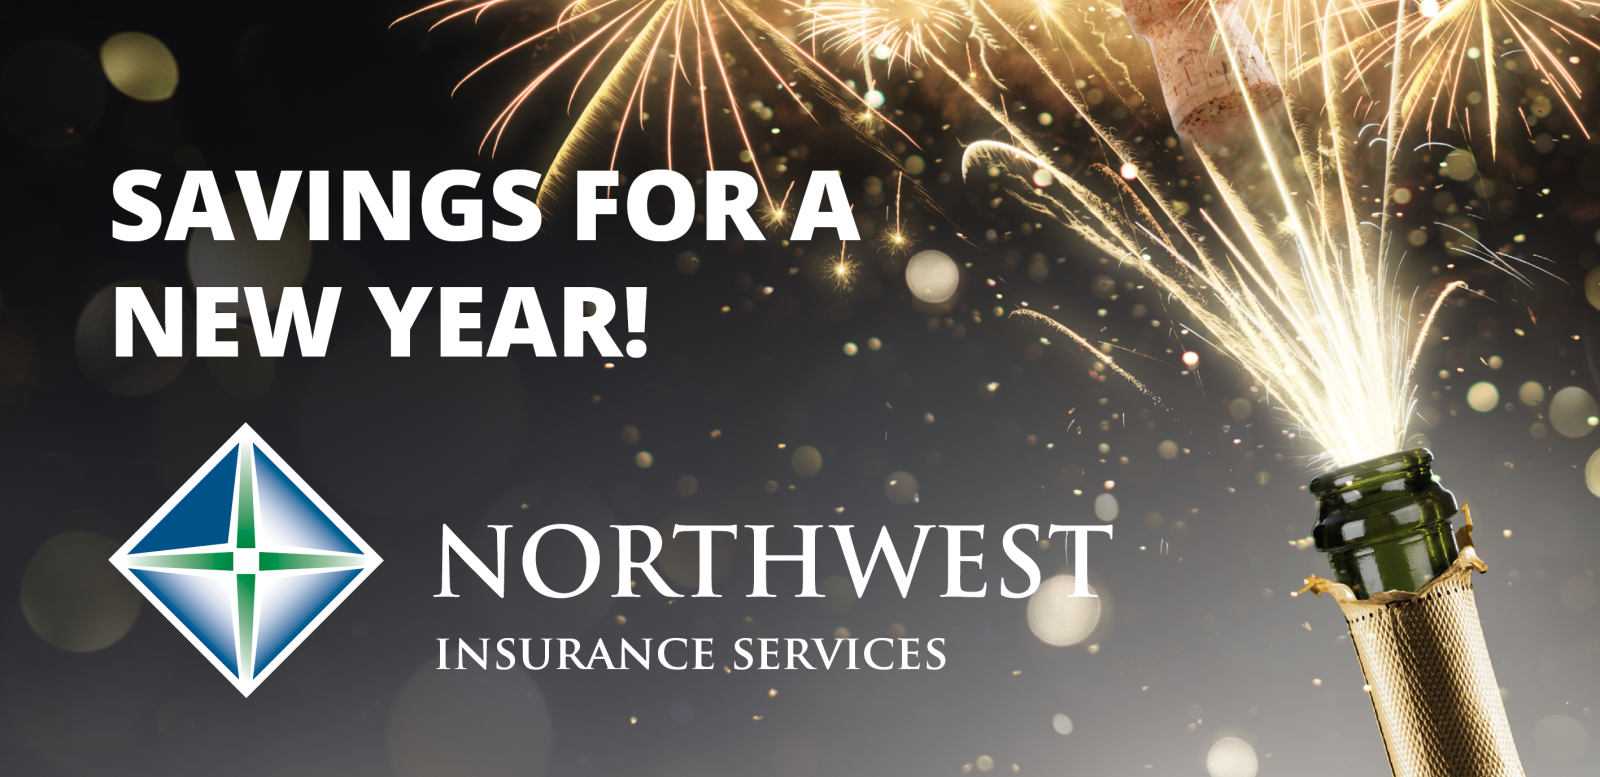 Image of new years eve saying savings for a new year! Image Northwest Insurance Services Logo.